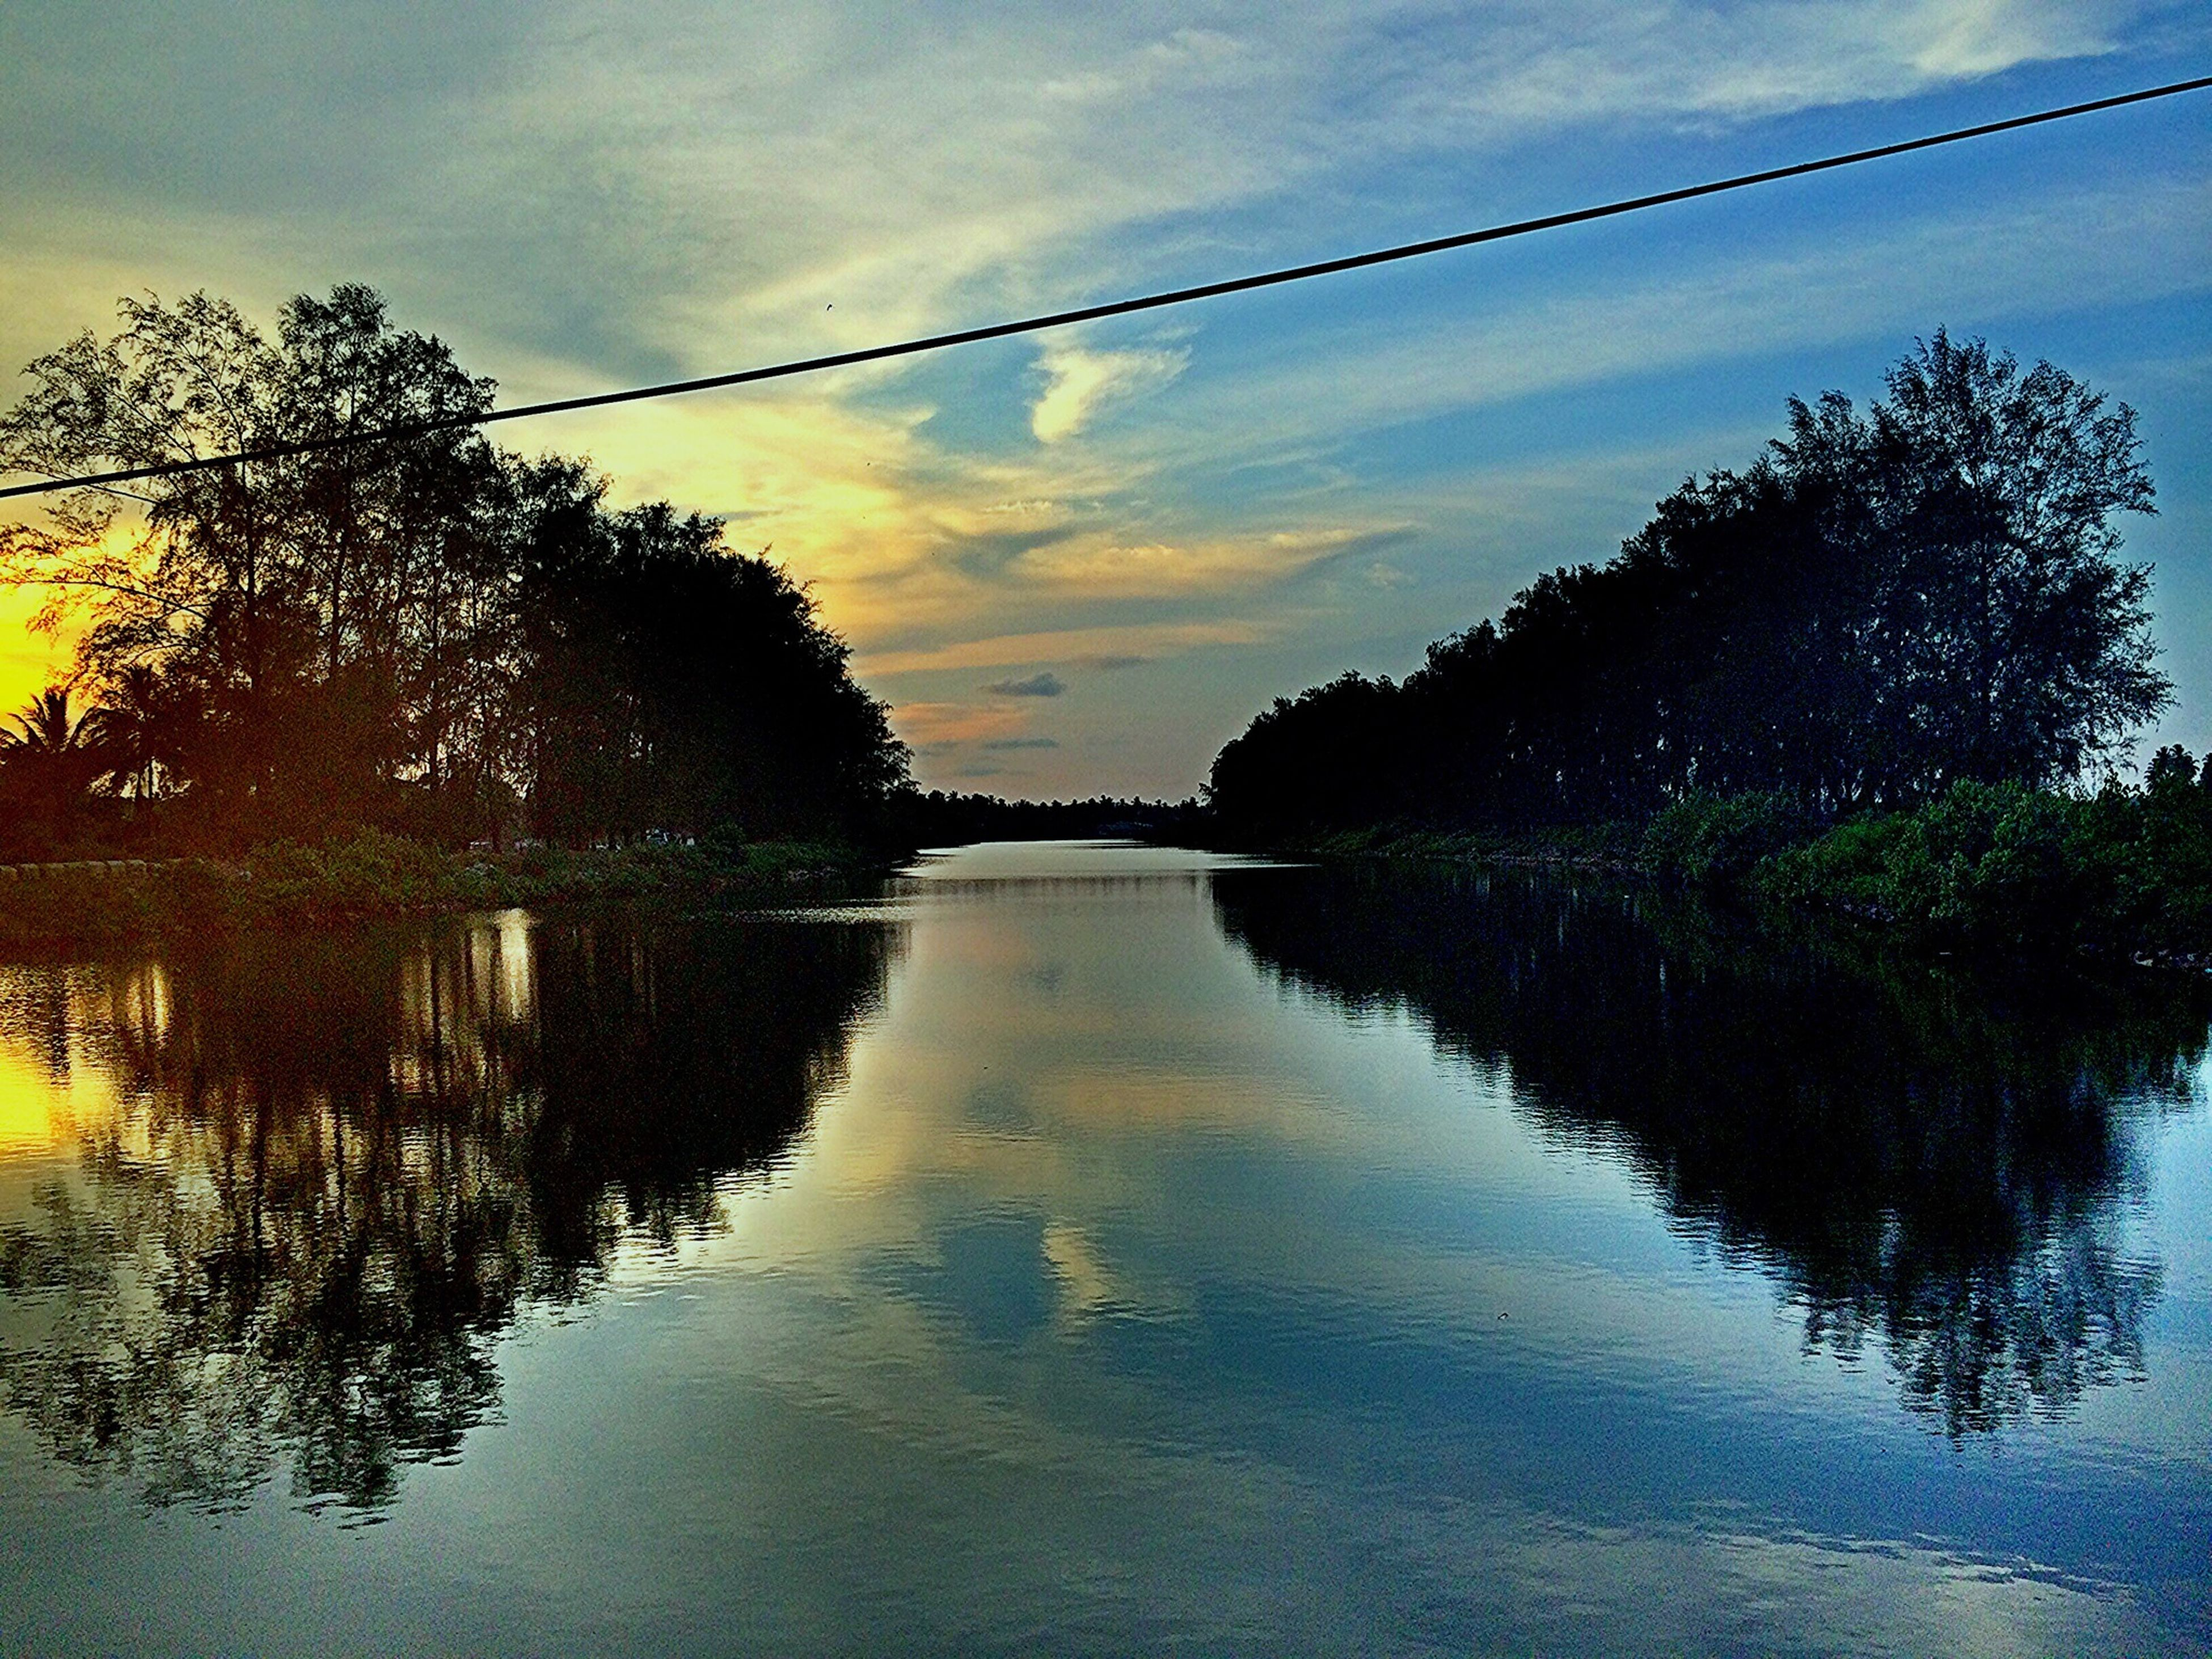 water, reflection, sky, tree, sunset, waterfront, tranquility, tranquil scene, cloud - sky, lake, river, scenics, beauty in nature, power line, nature, cloud, electricity pylon, rippled, outdoors, no people